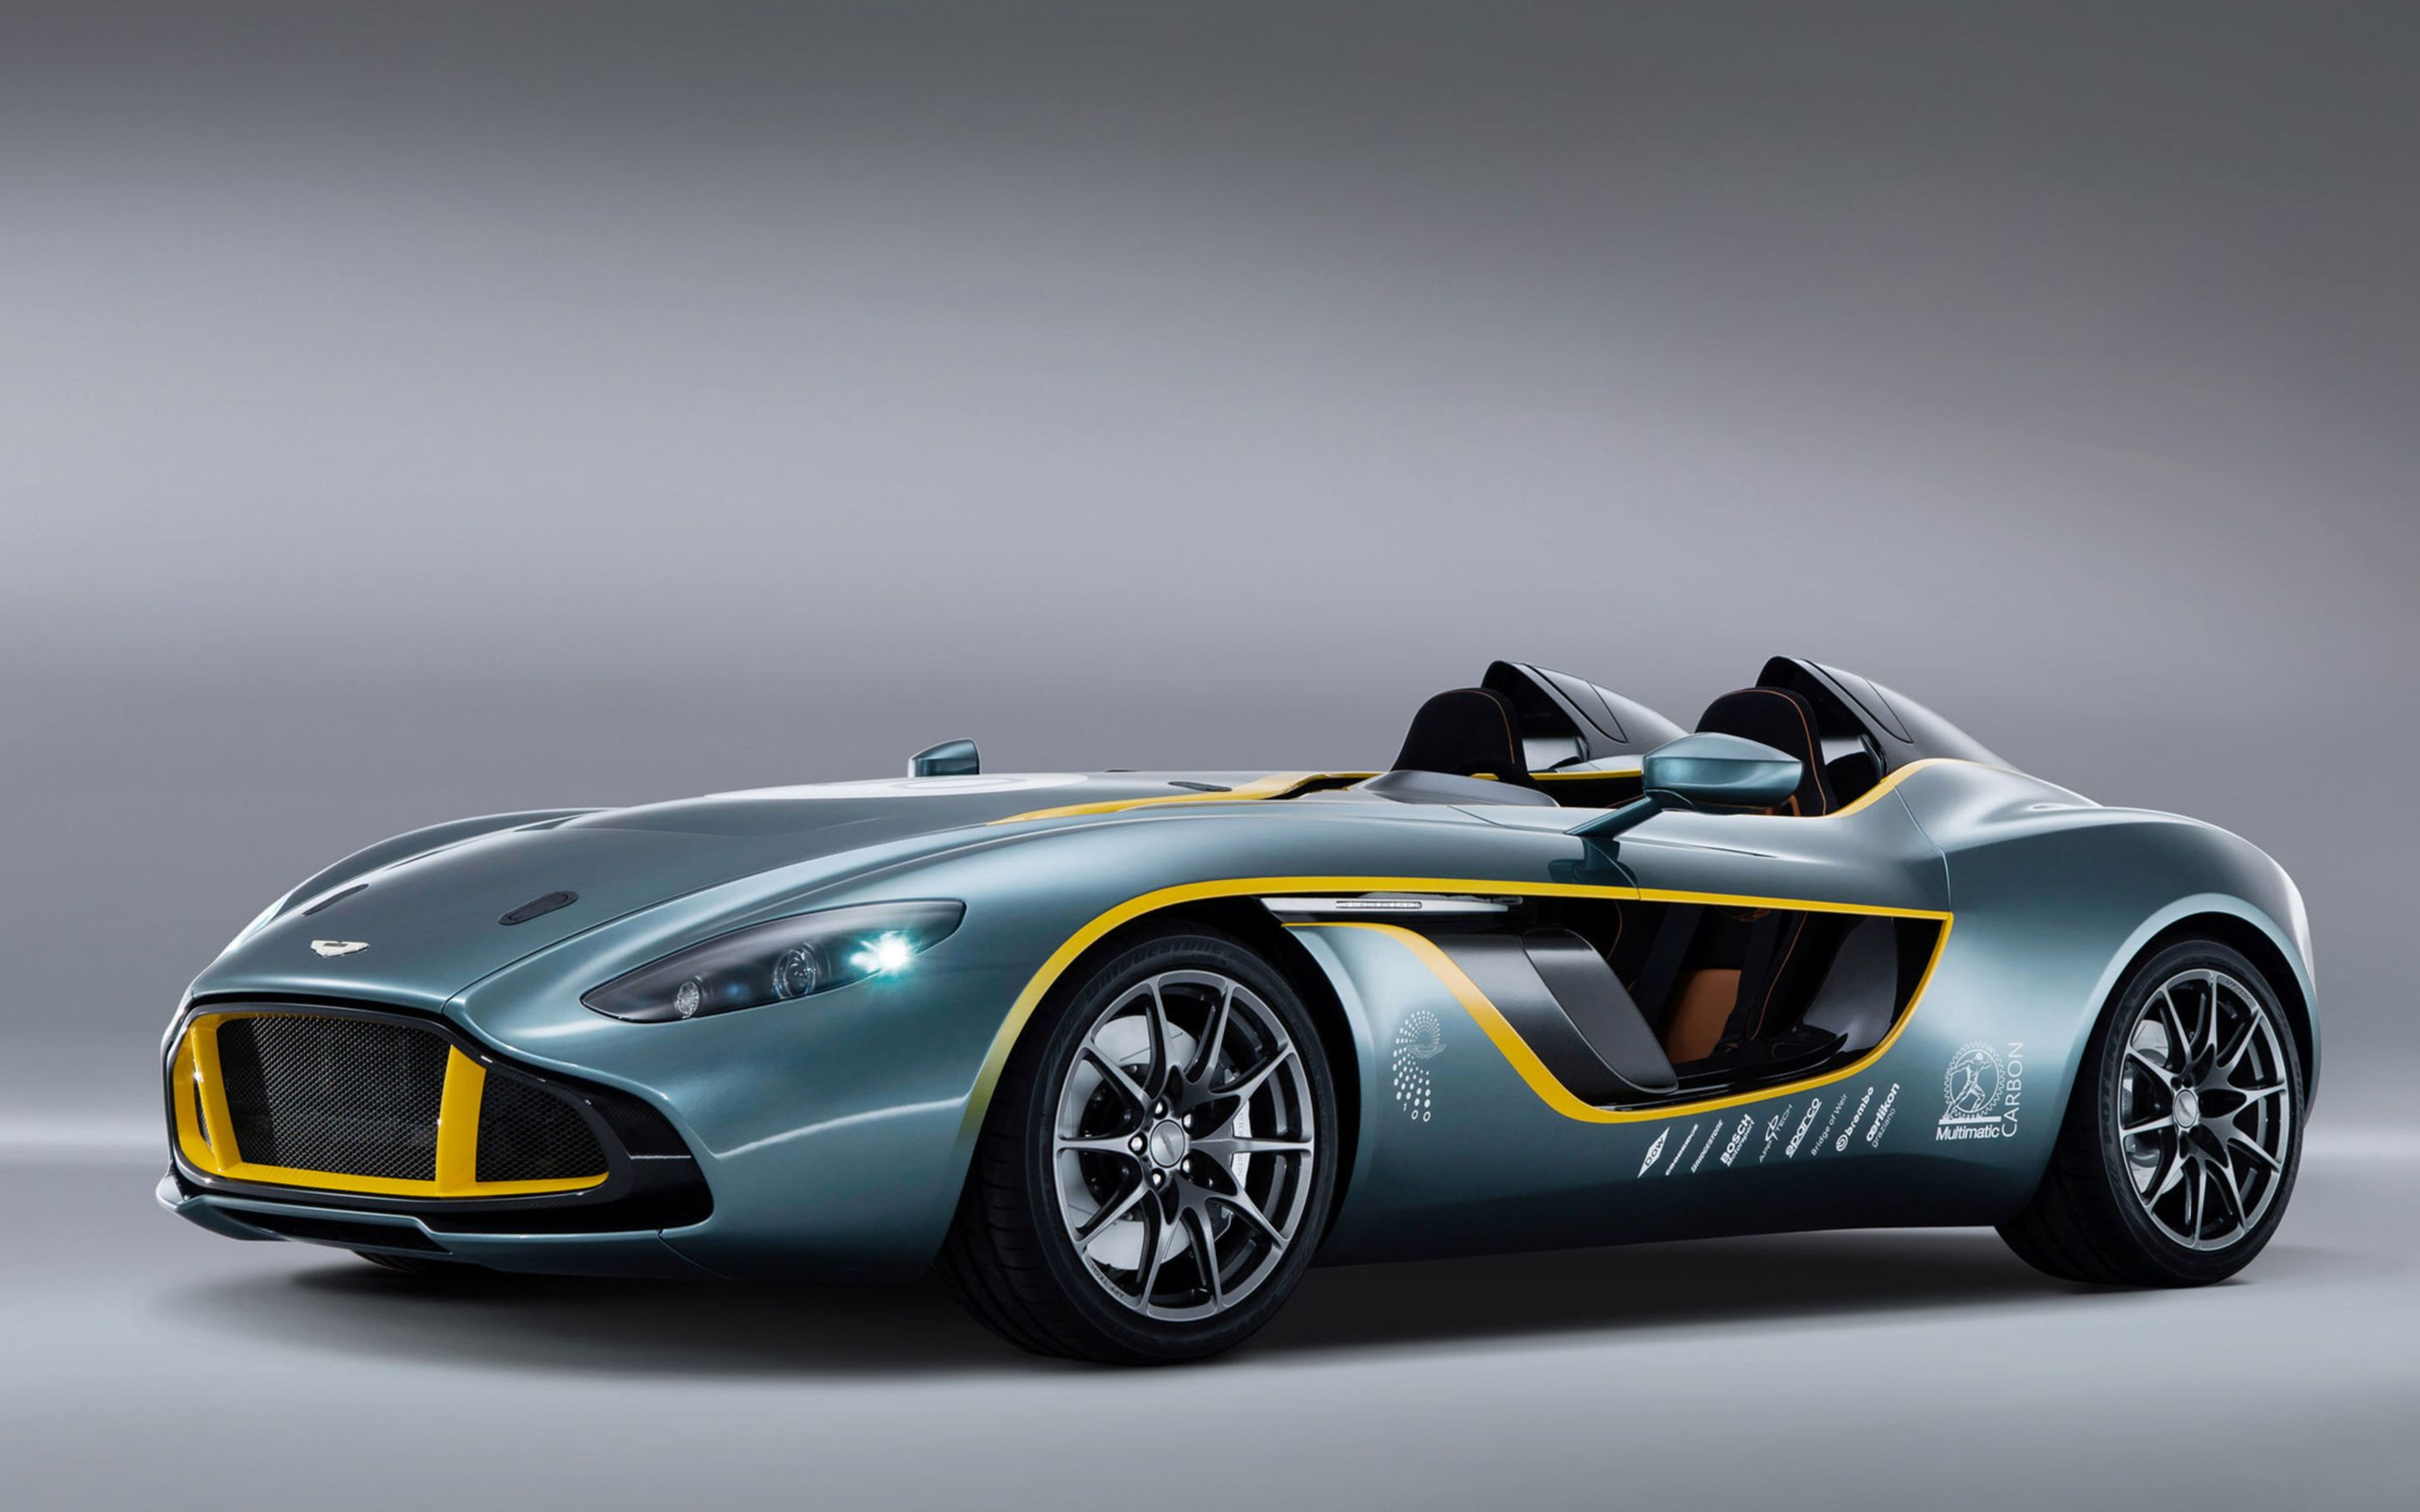 Download free HD Aston Martin Cc100 Speedster Concept Wide Wallpaper, image